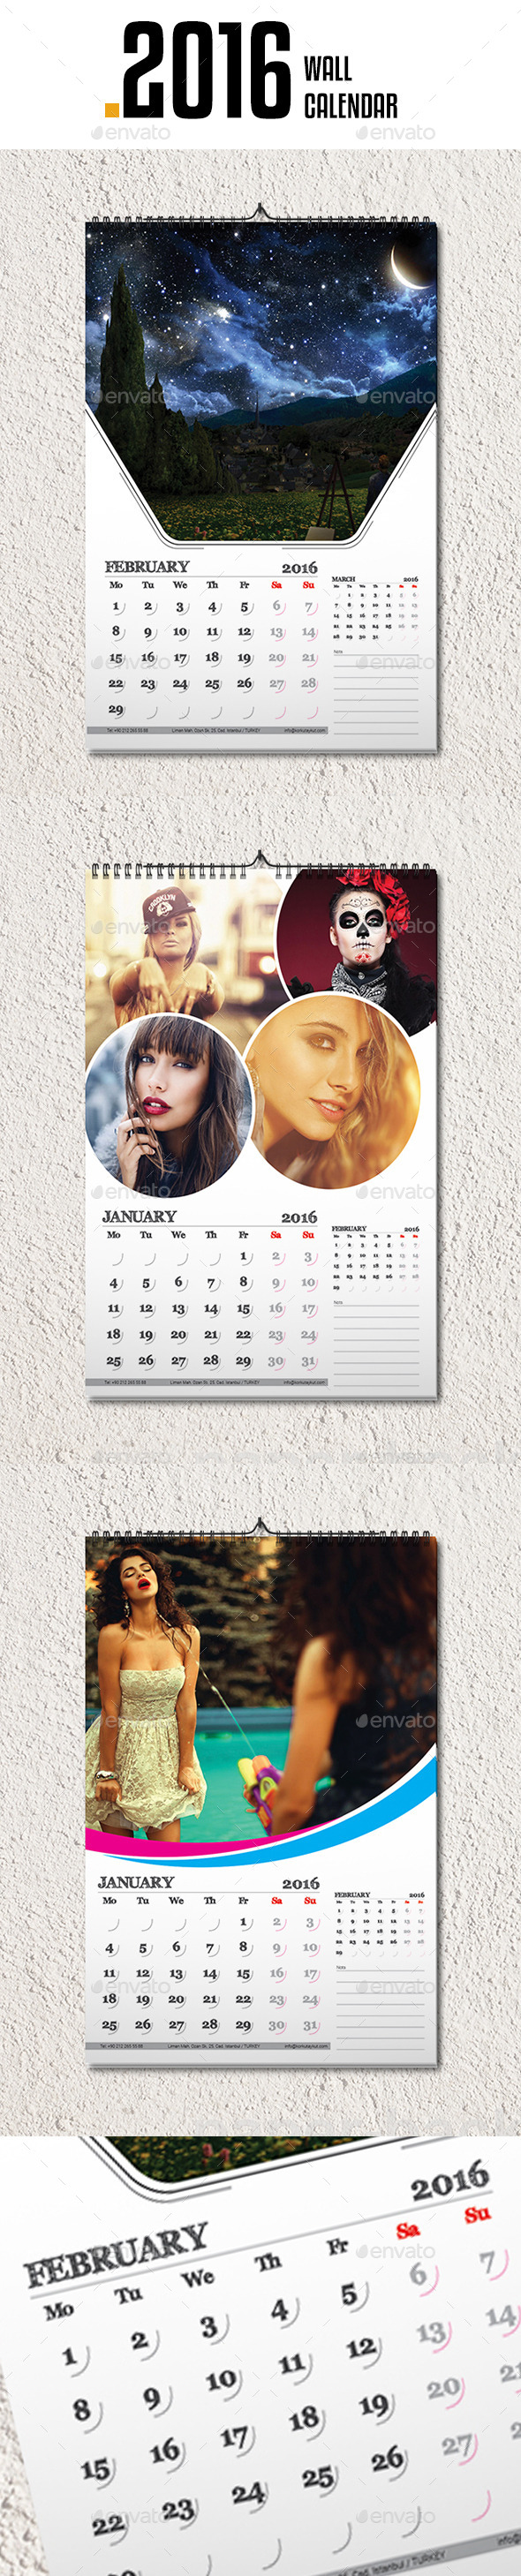 Wall Calendar 2016 v3 - Calendars Stationery